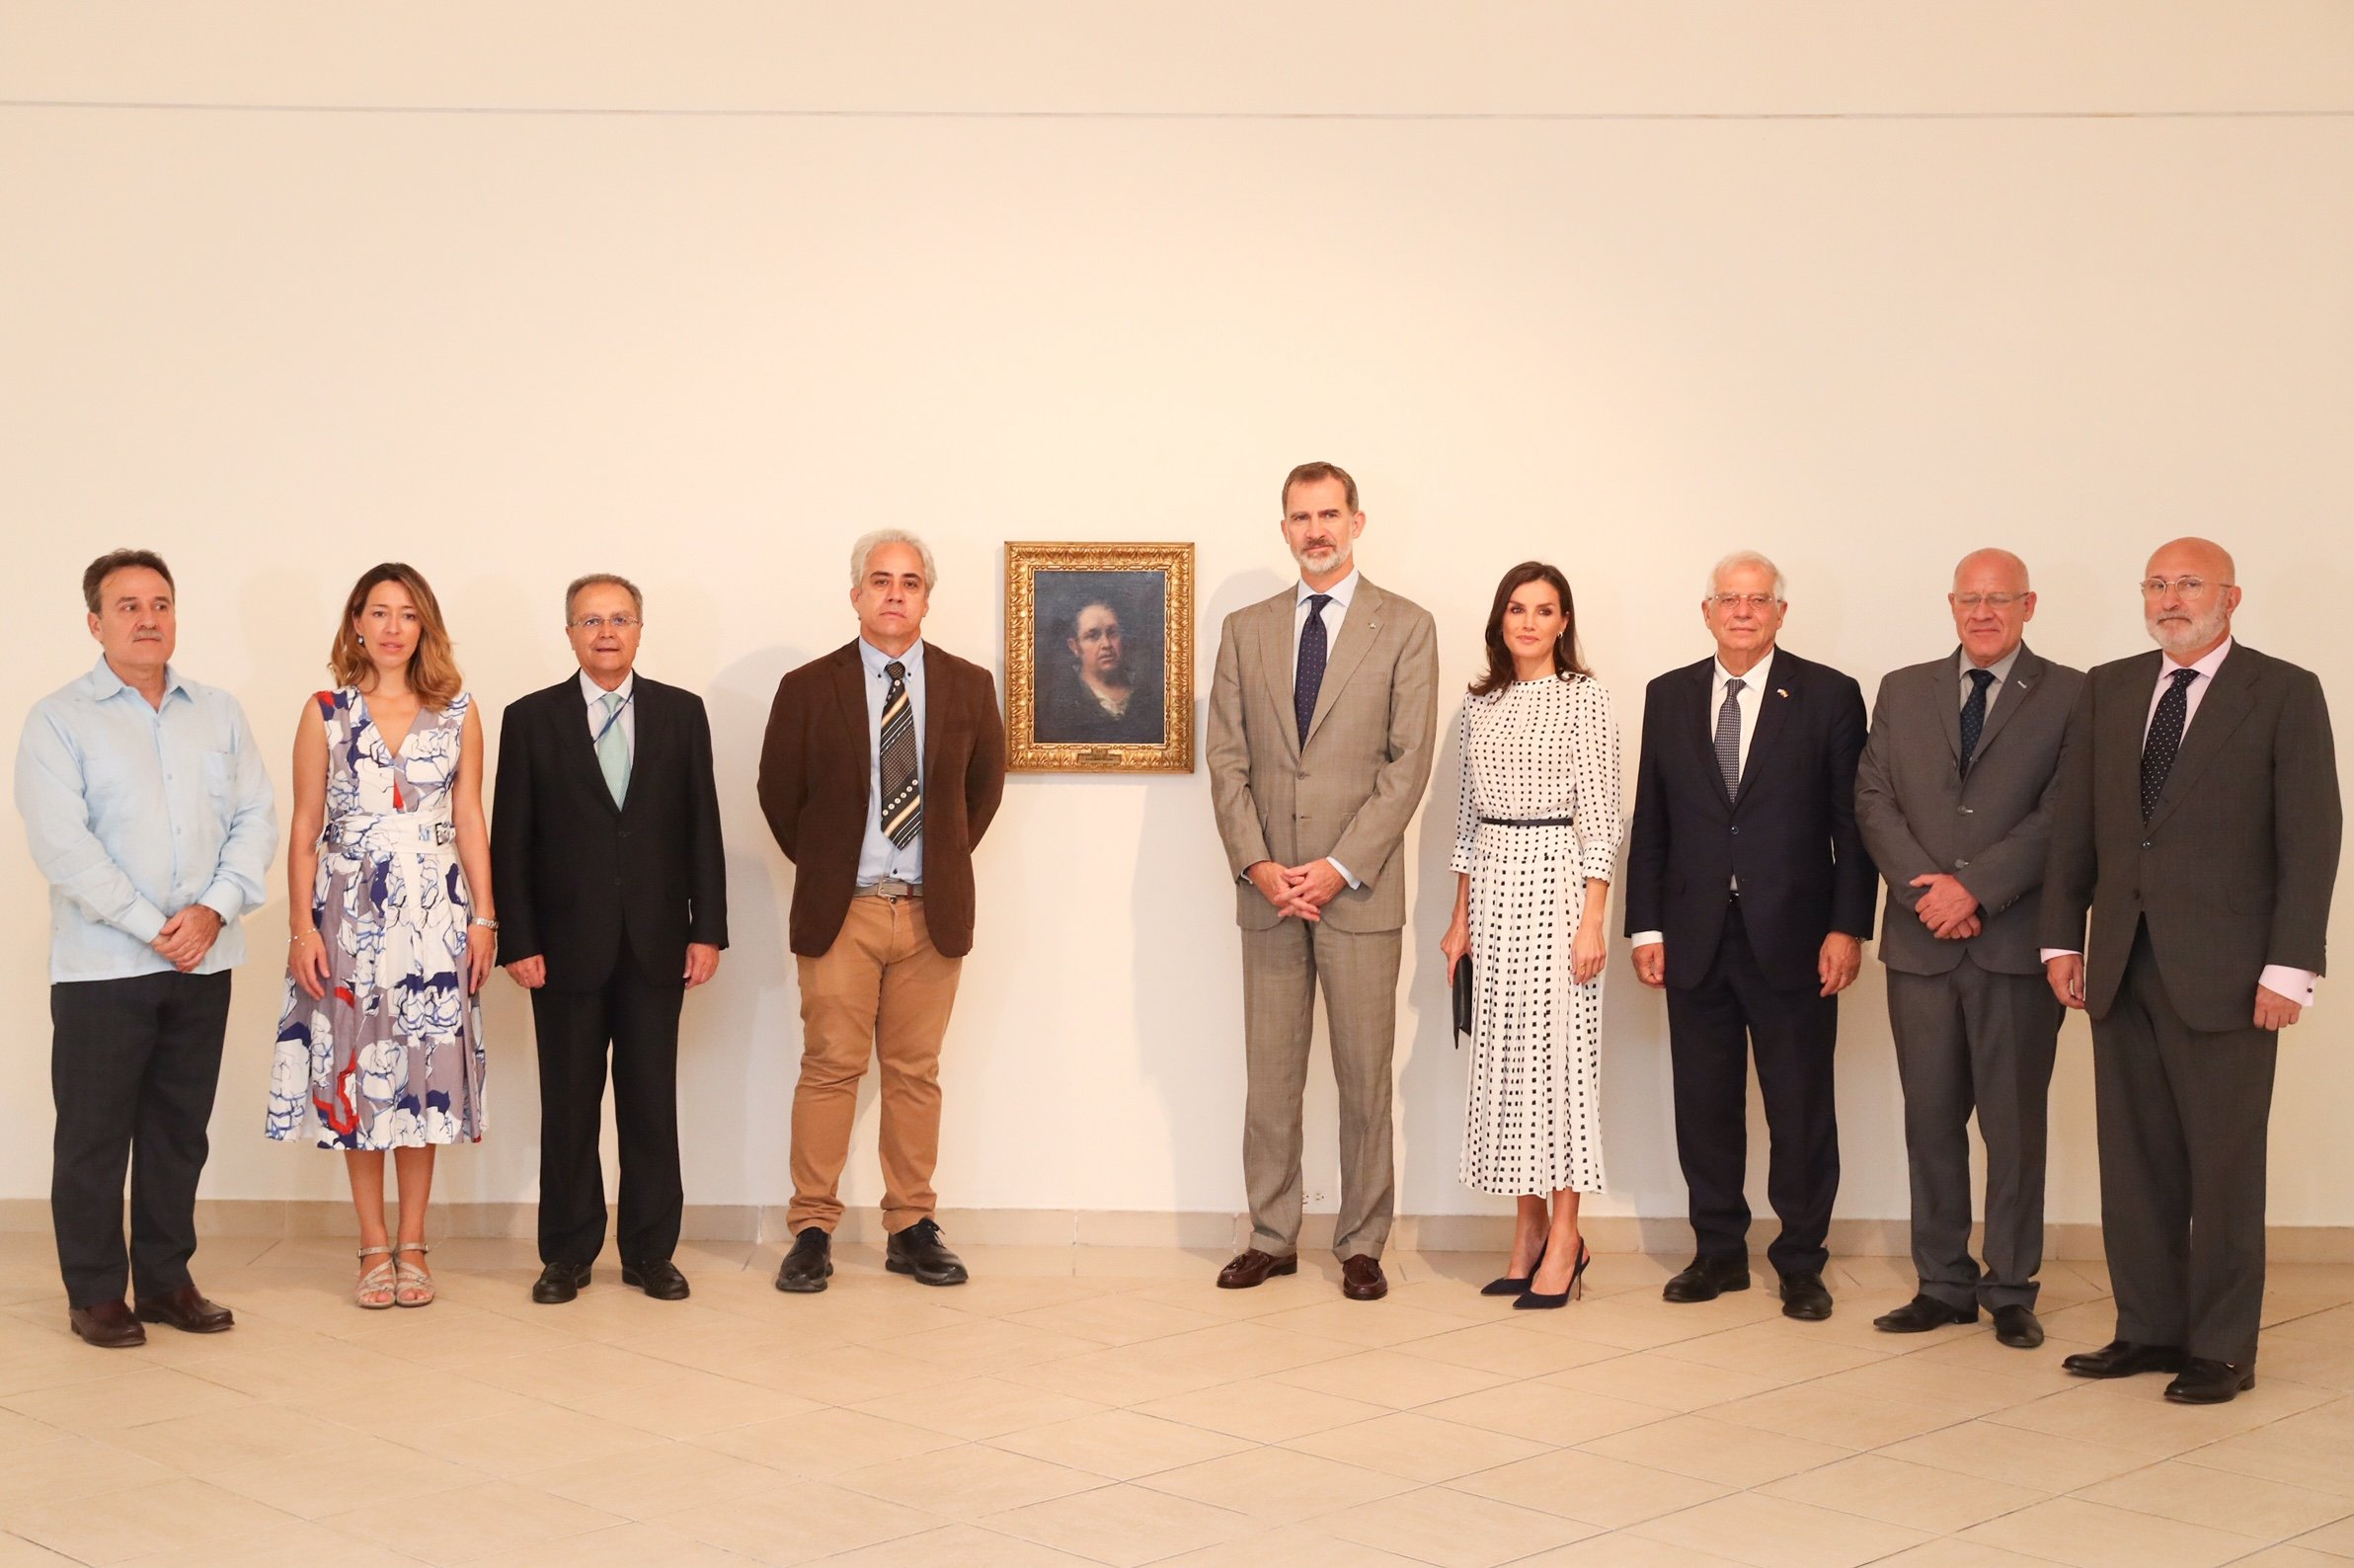 King and Queen of Spain visit National Museum of Fine Arts